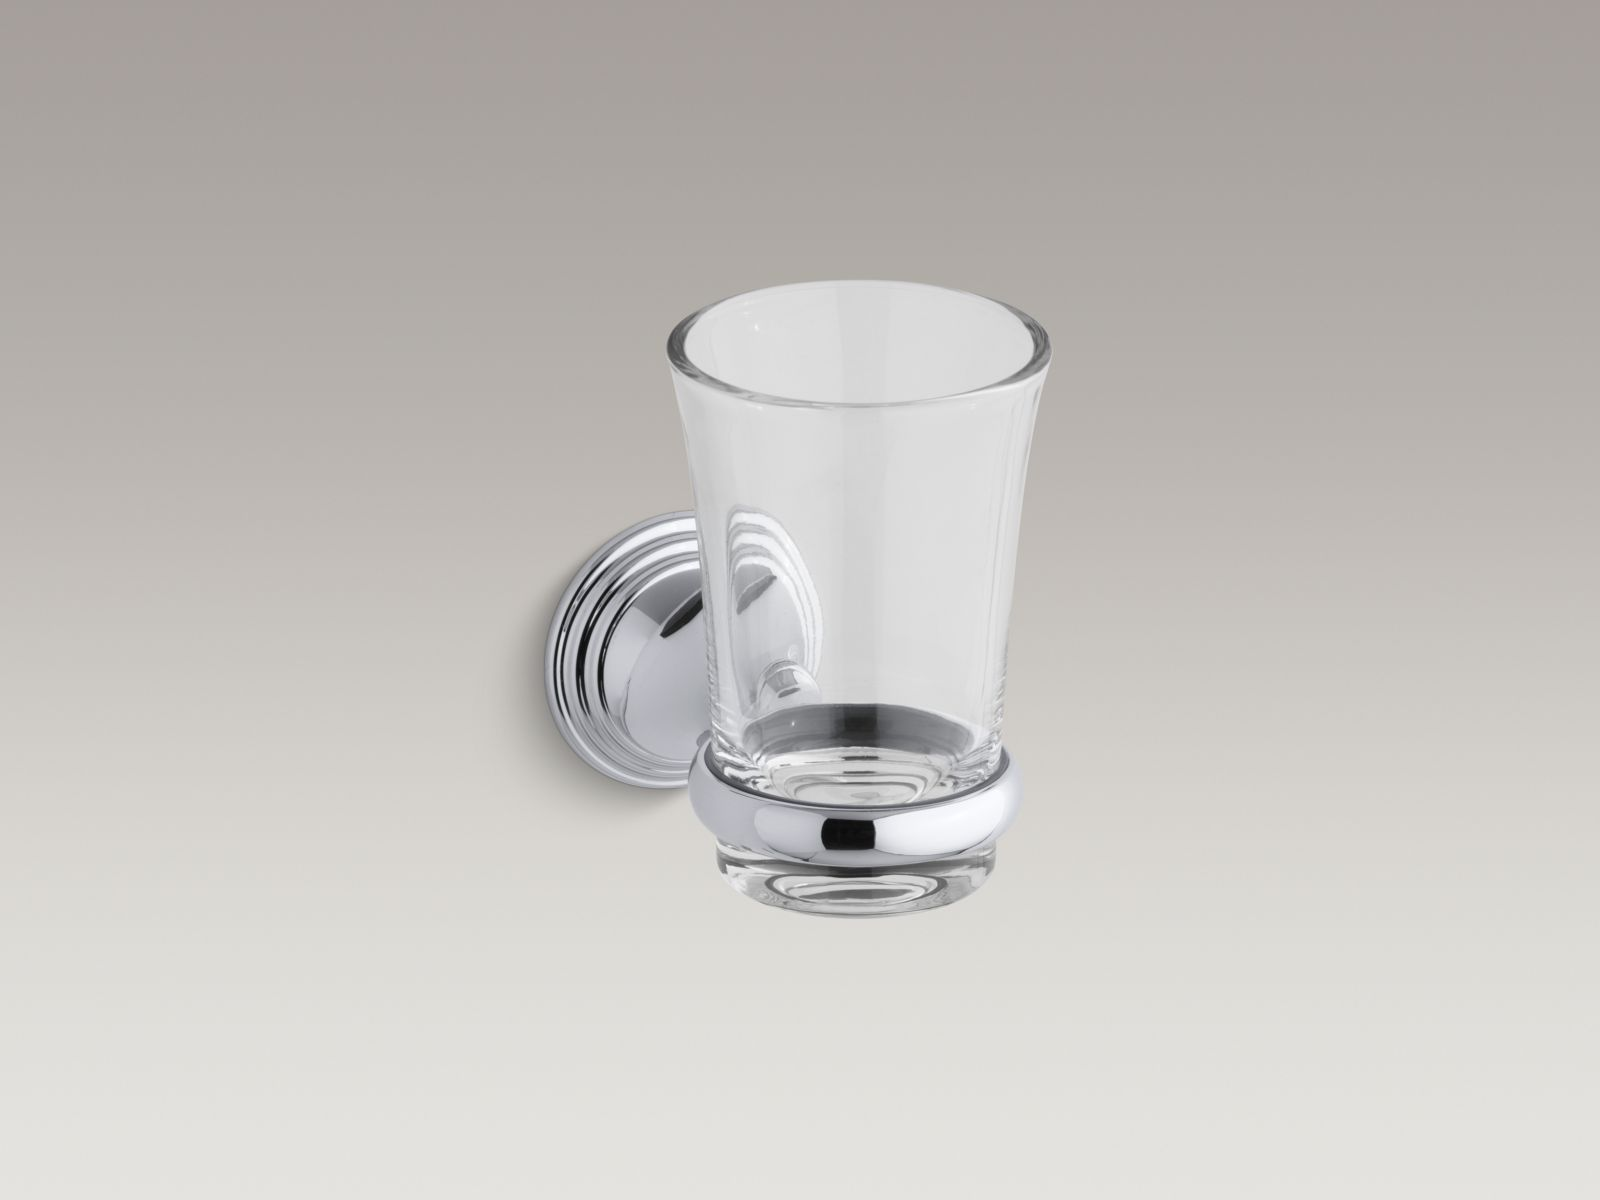 BuyPlumbingnet Product Kohler KCP Devonshire Tumbler And - Kohler bathroom accessories chrome